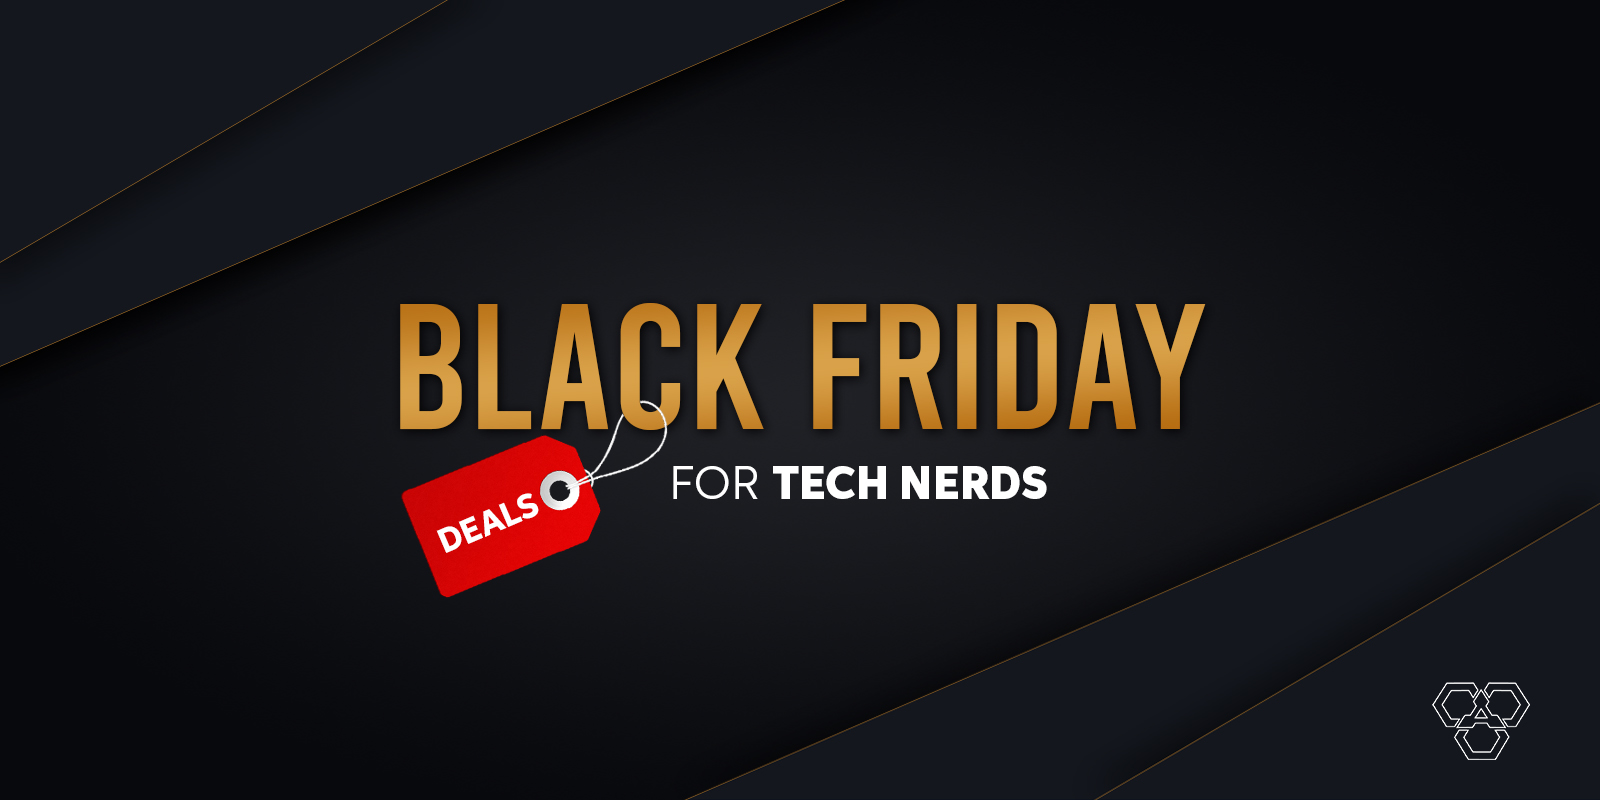 Top early Black Friday deals for tech nerds